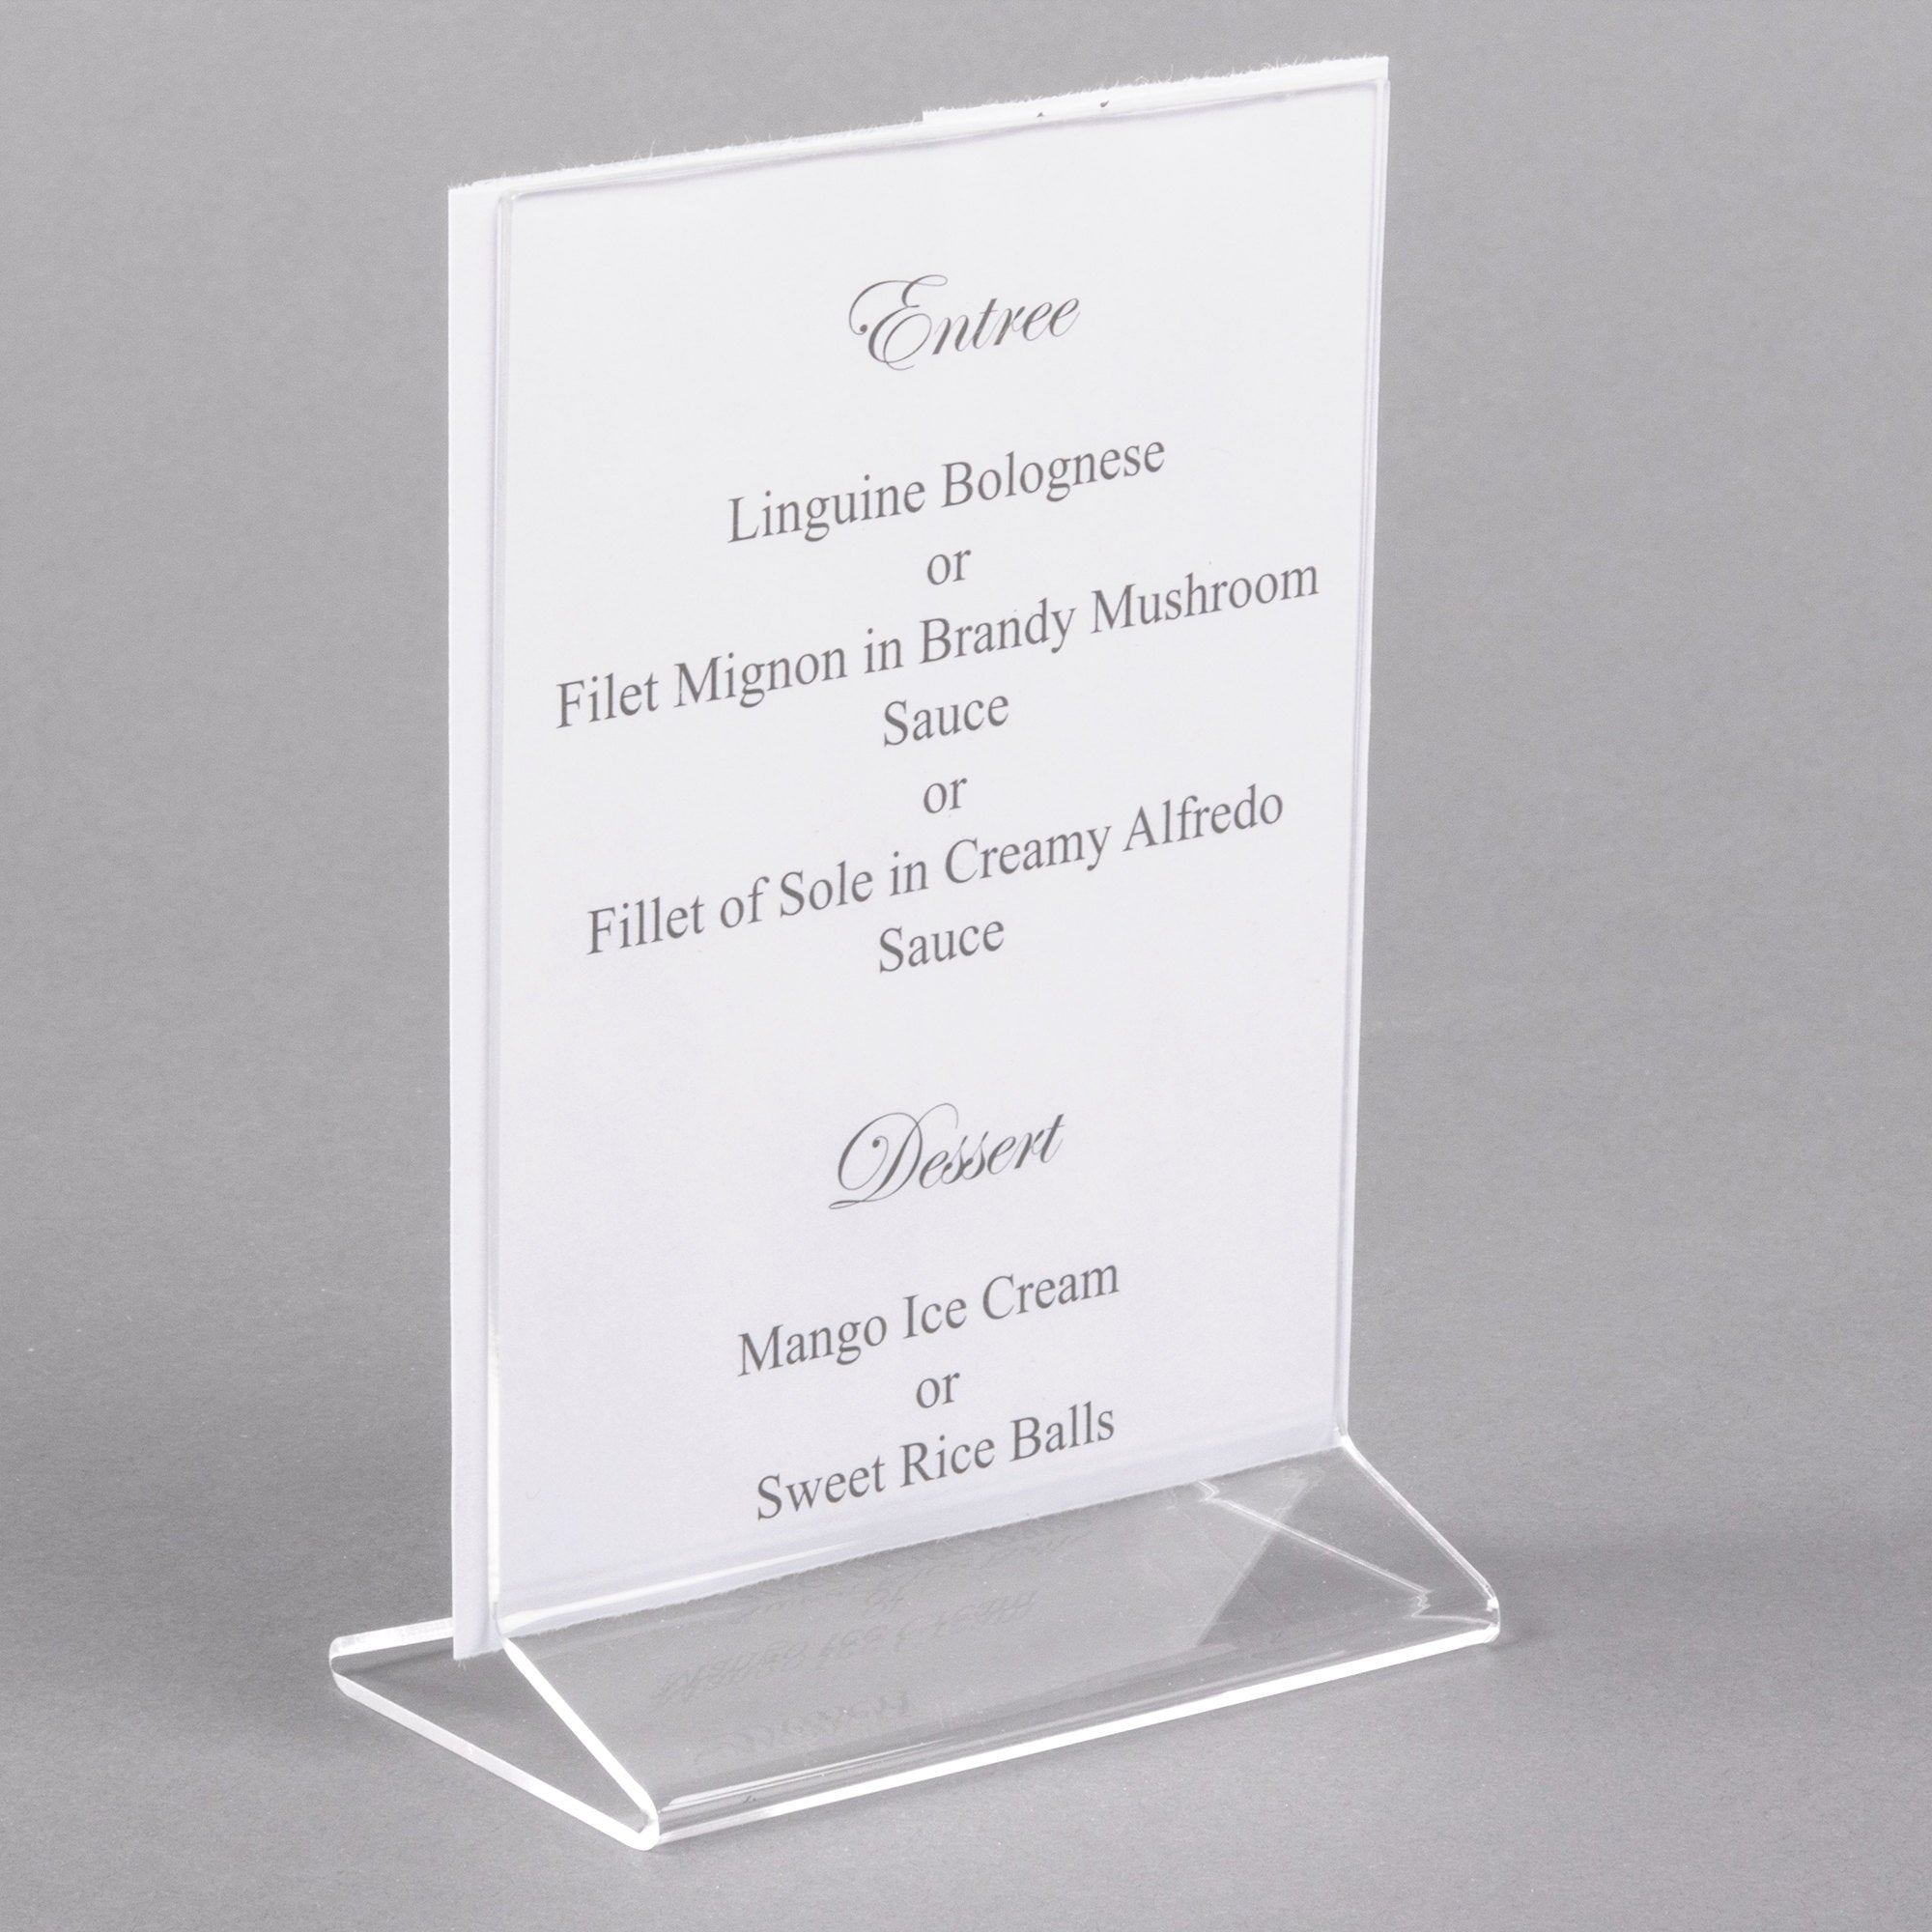 CLASSIC STANDARD TABLETOP CARDHOLDER - Mabrook Hotel Supplies